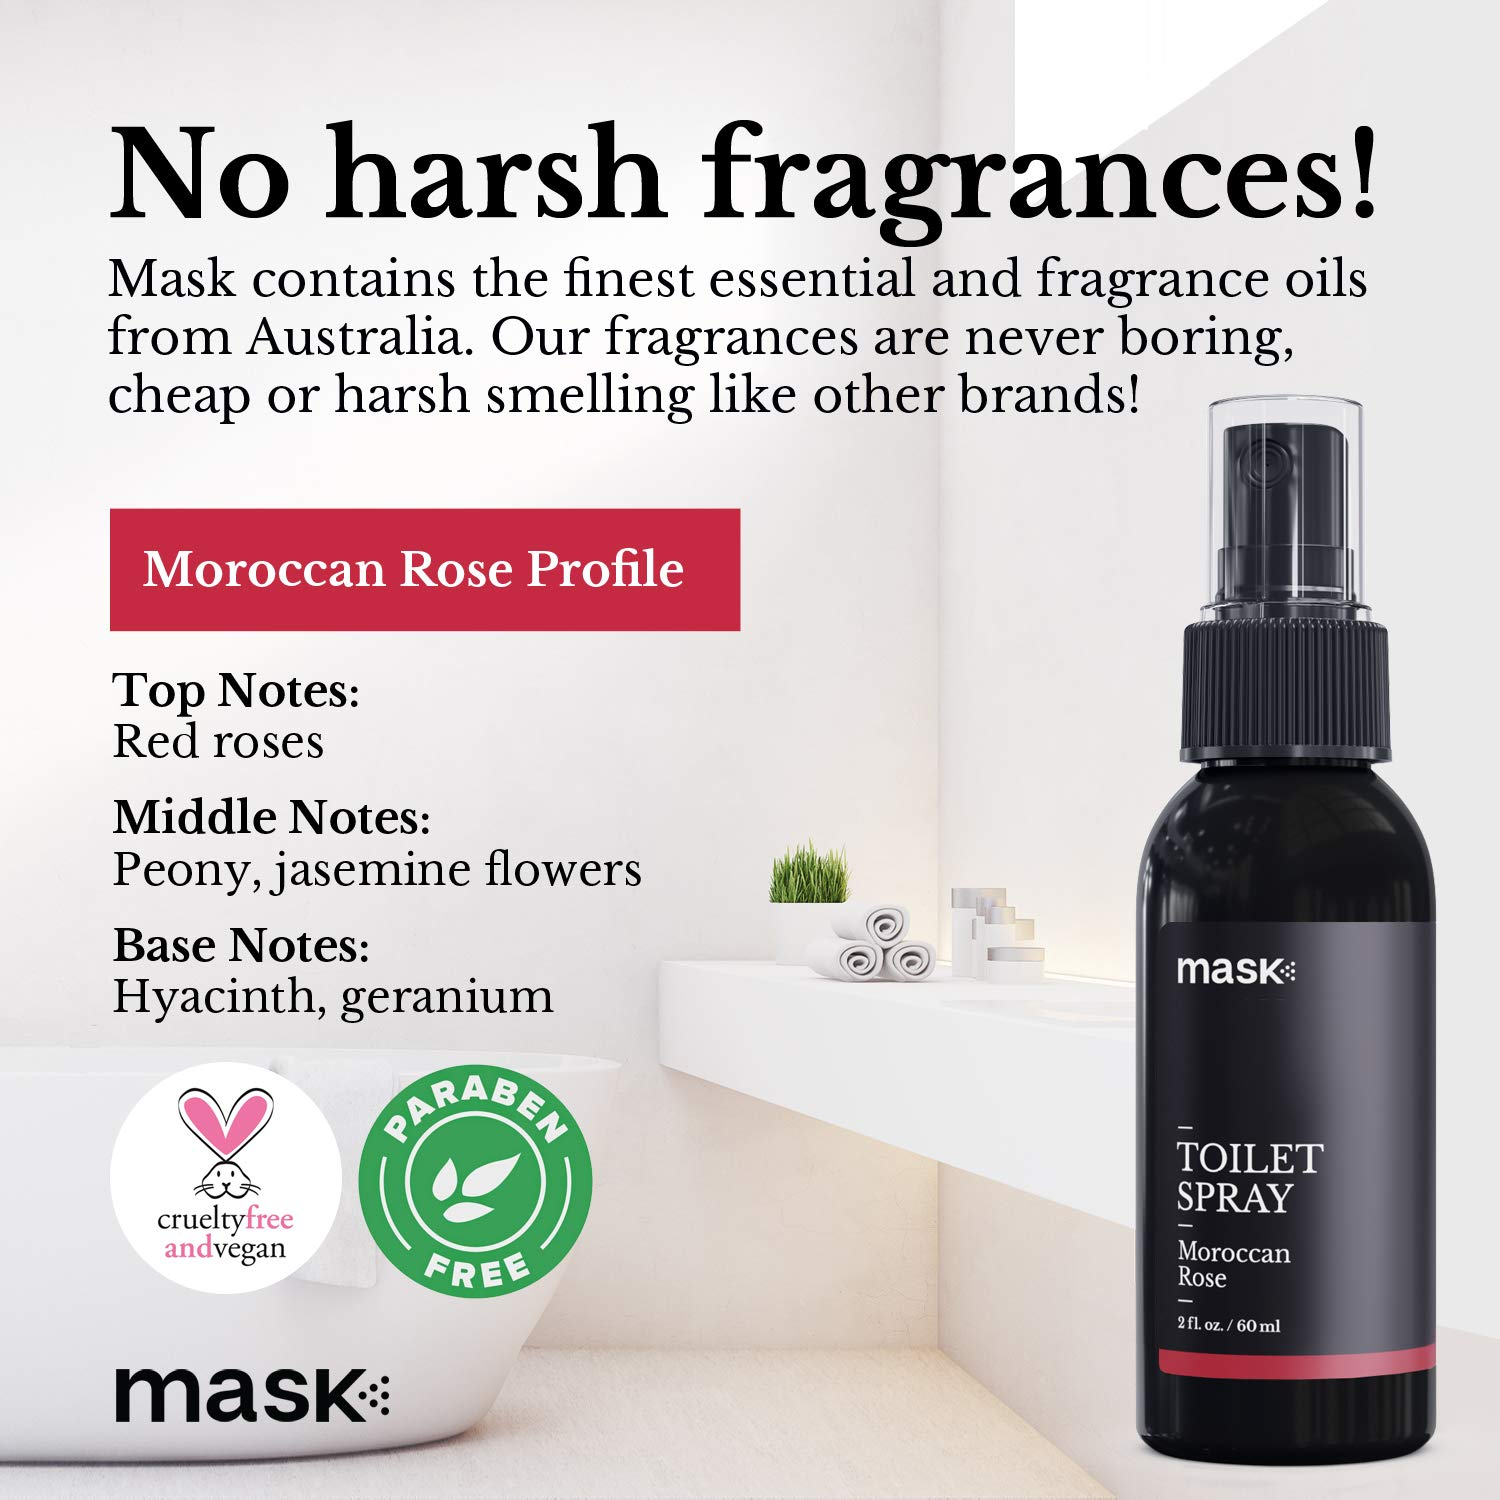 Mask Toilet Spray, Moroccan Rose, 2-Ounce (6-Pack), Deodorizer Bathroom Spray by Mask (Image #4)